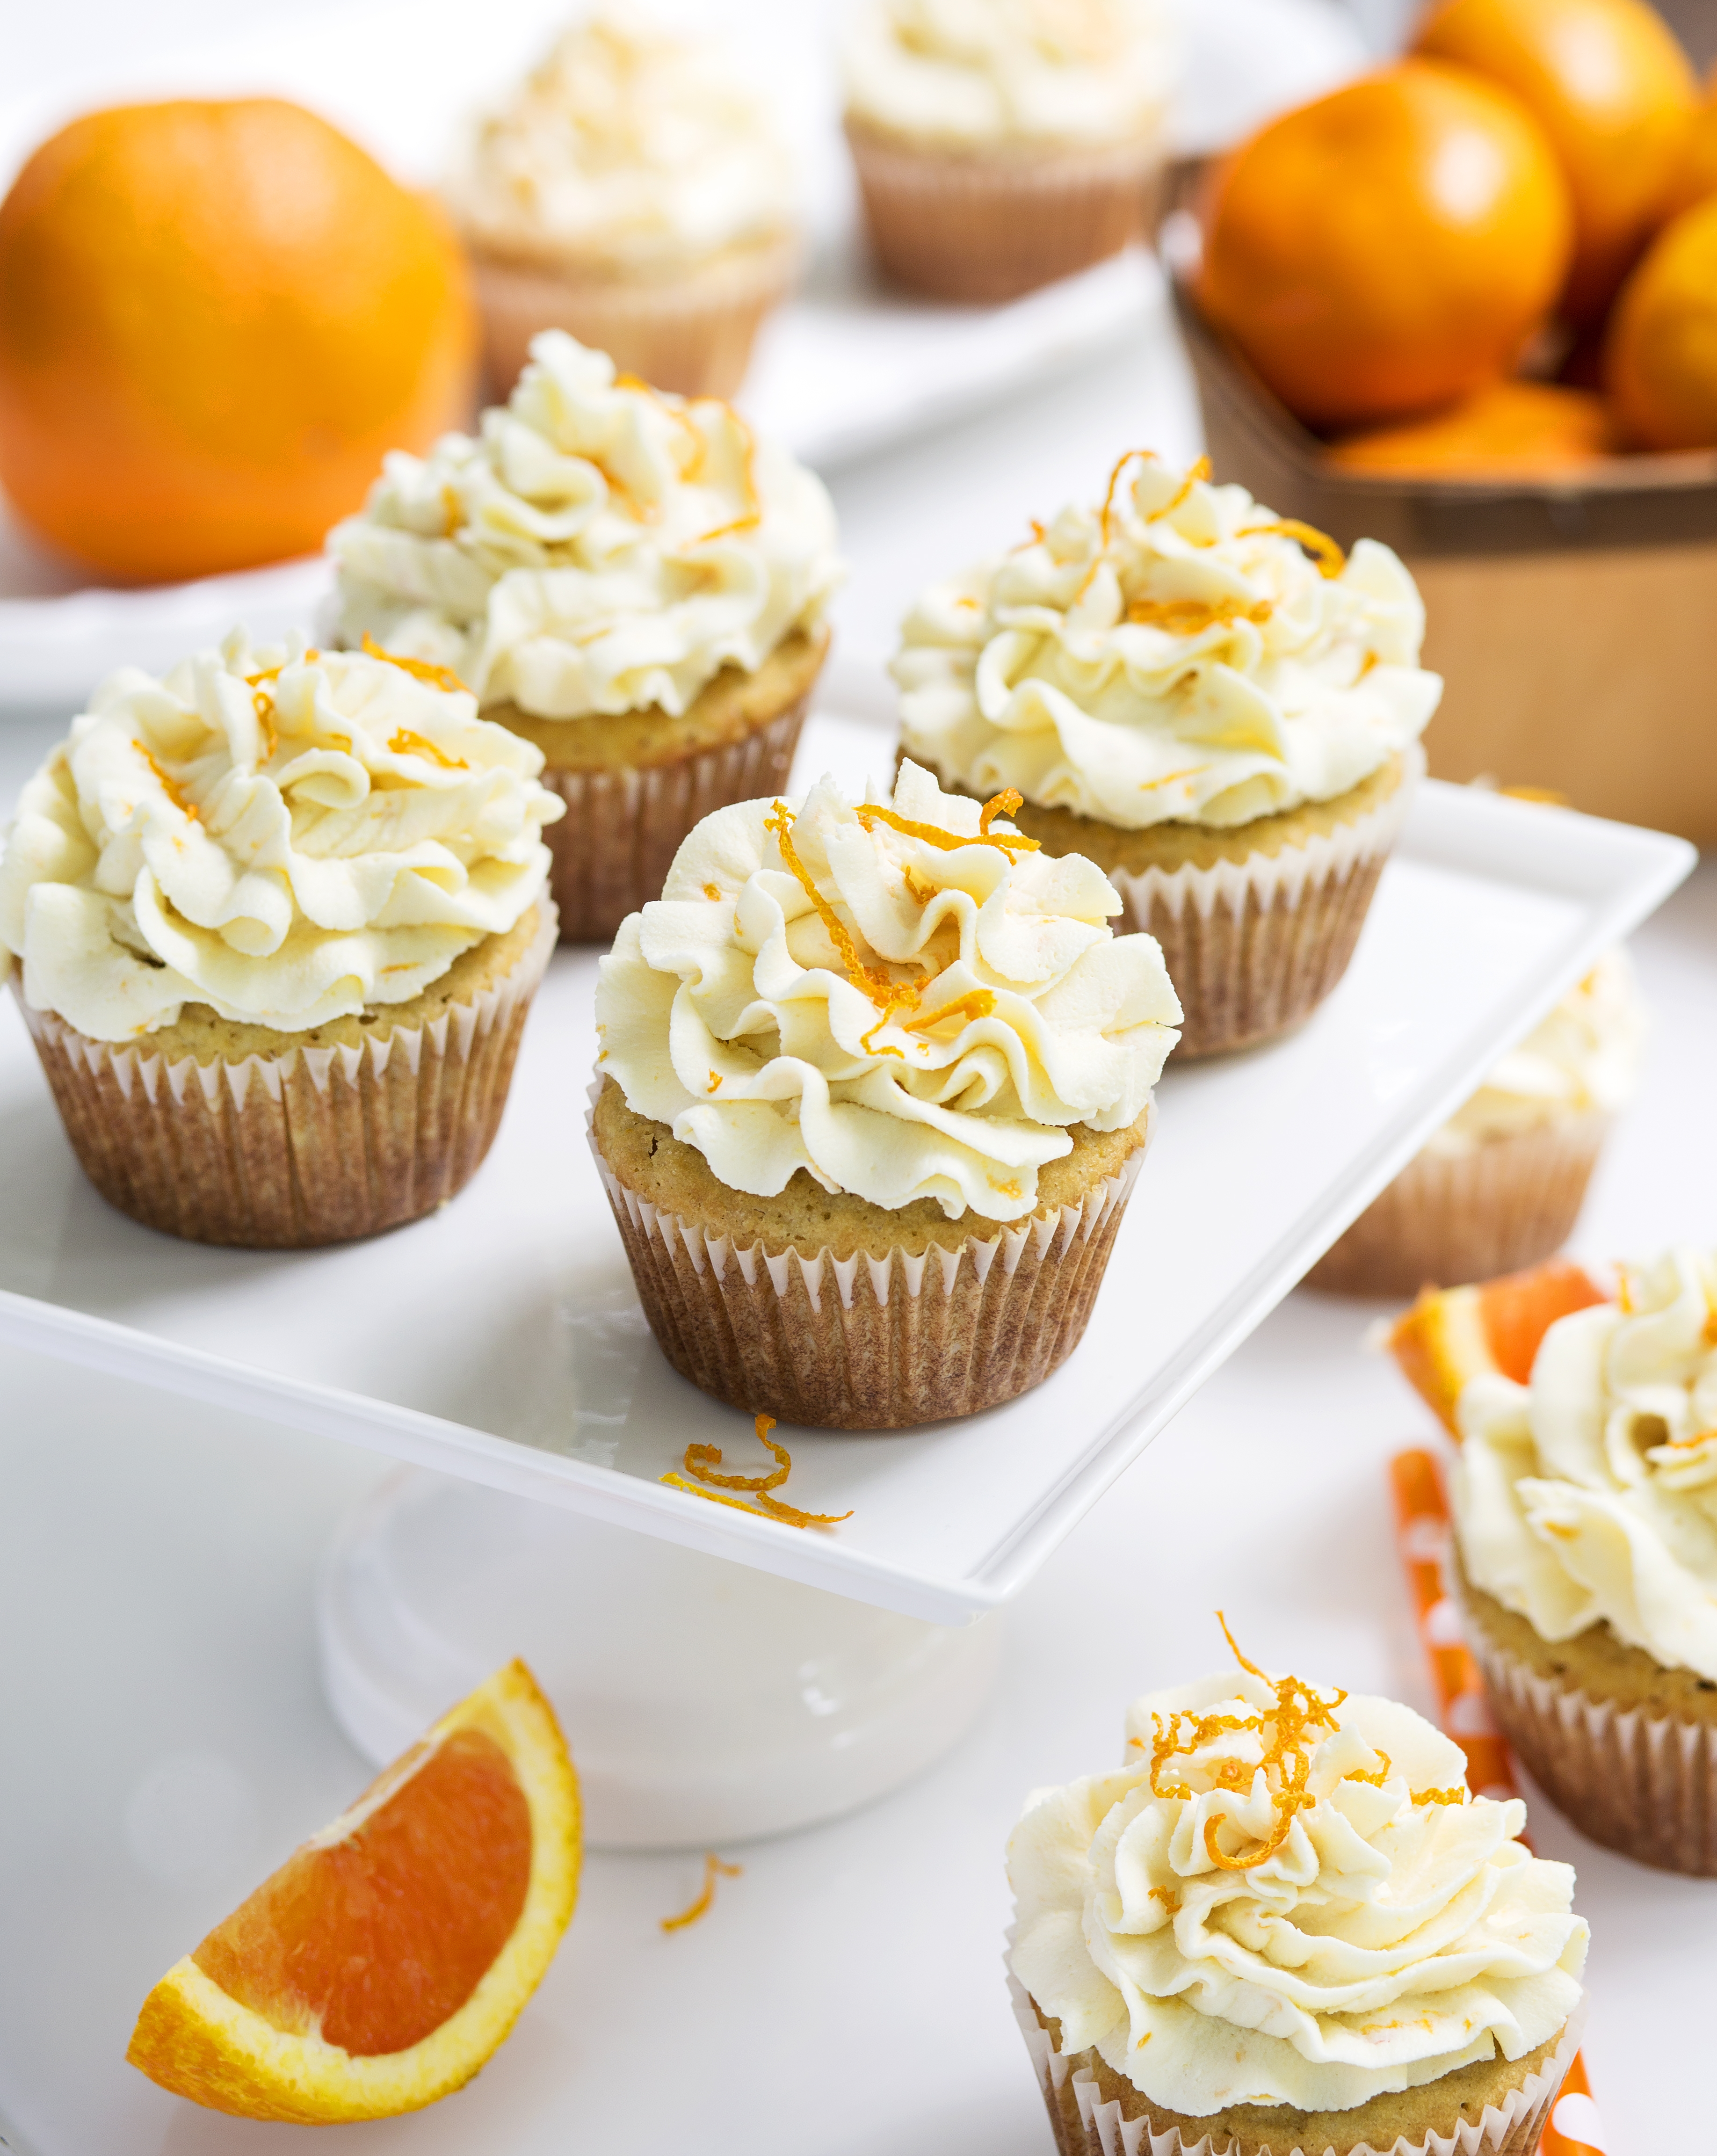 Gluten Free Orange Creamsicle Cupcake Recipe